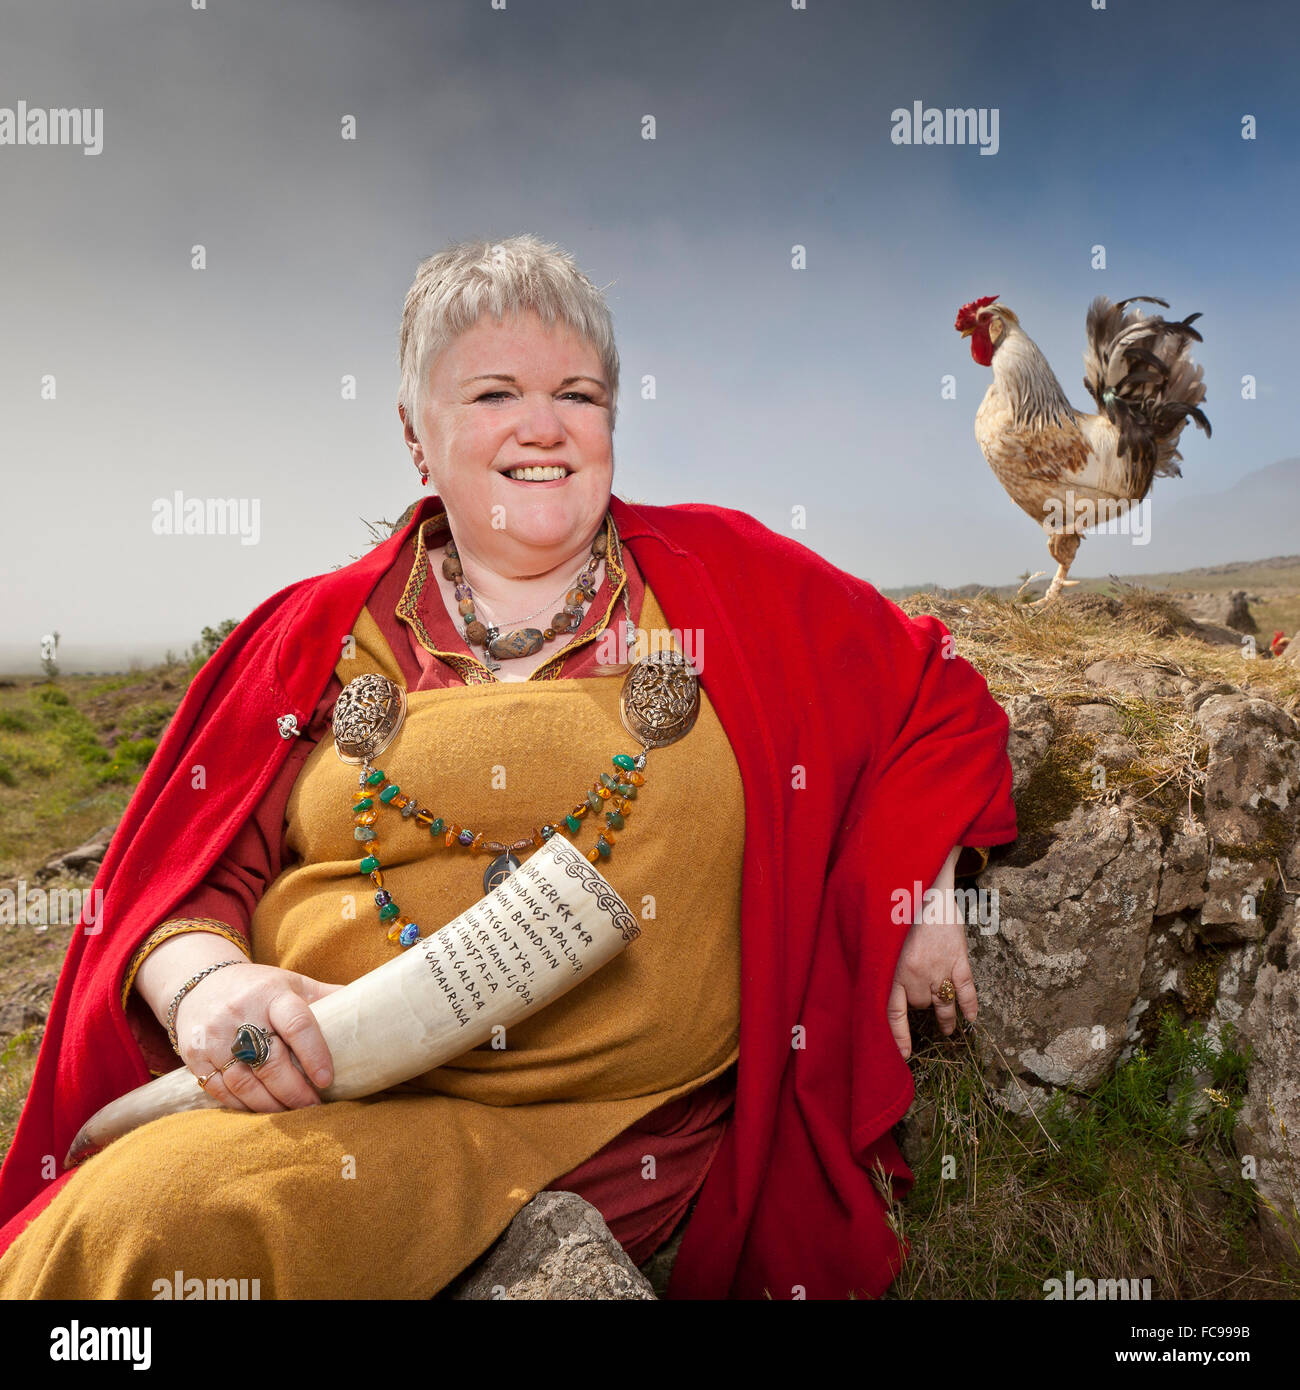 Asa Priest in traditional viking clothing, holding a bull horn. Asa beliefs also know as Paganism. Stock Photo